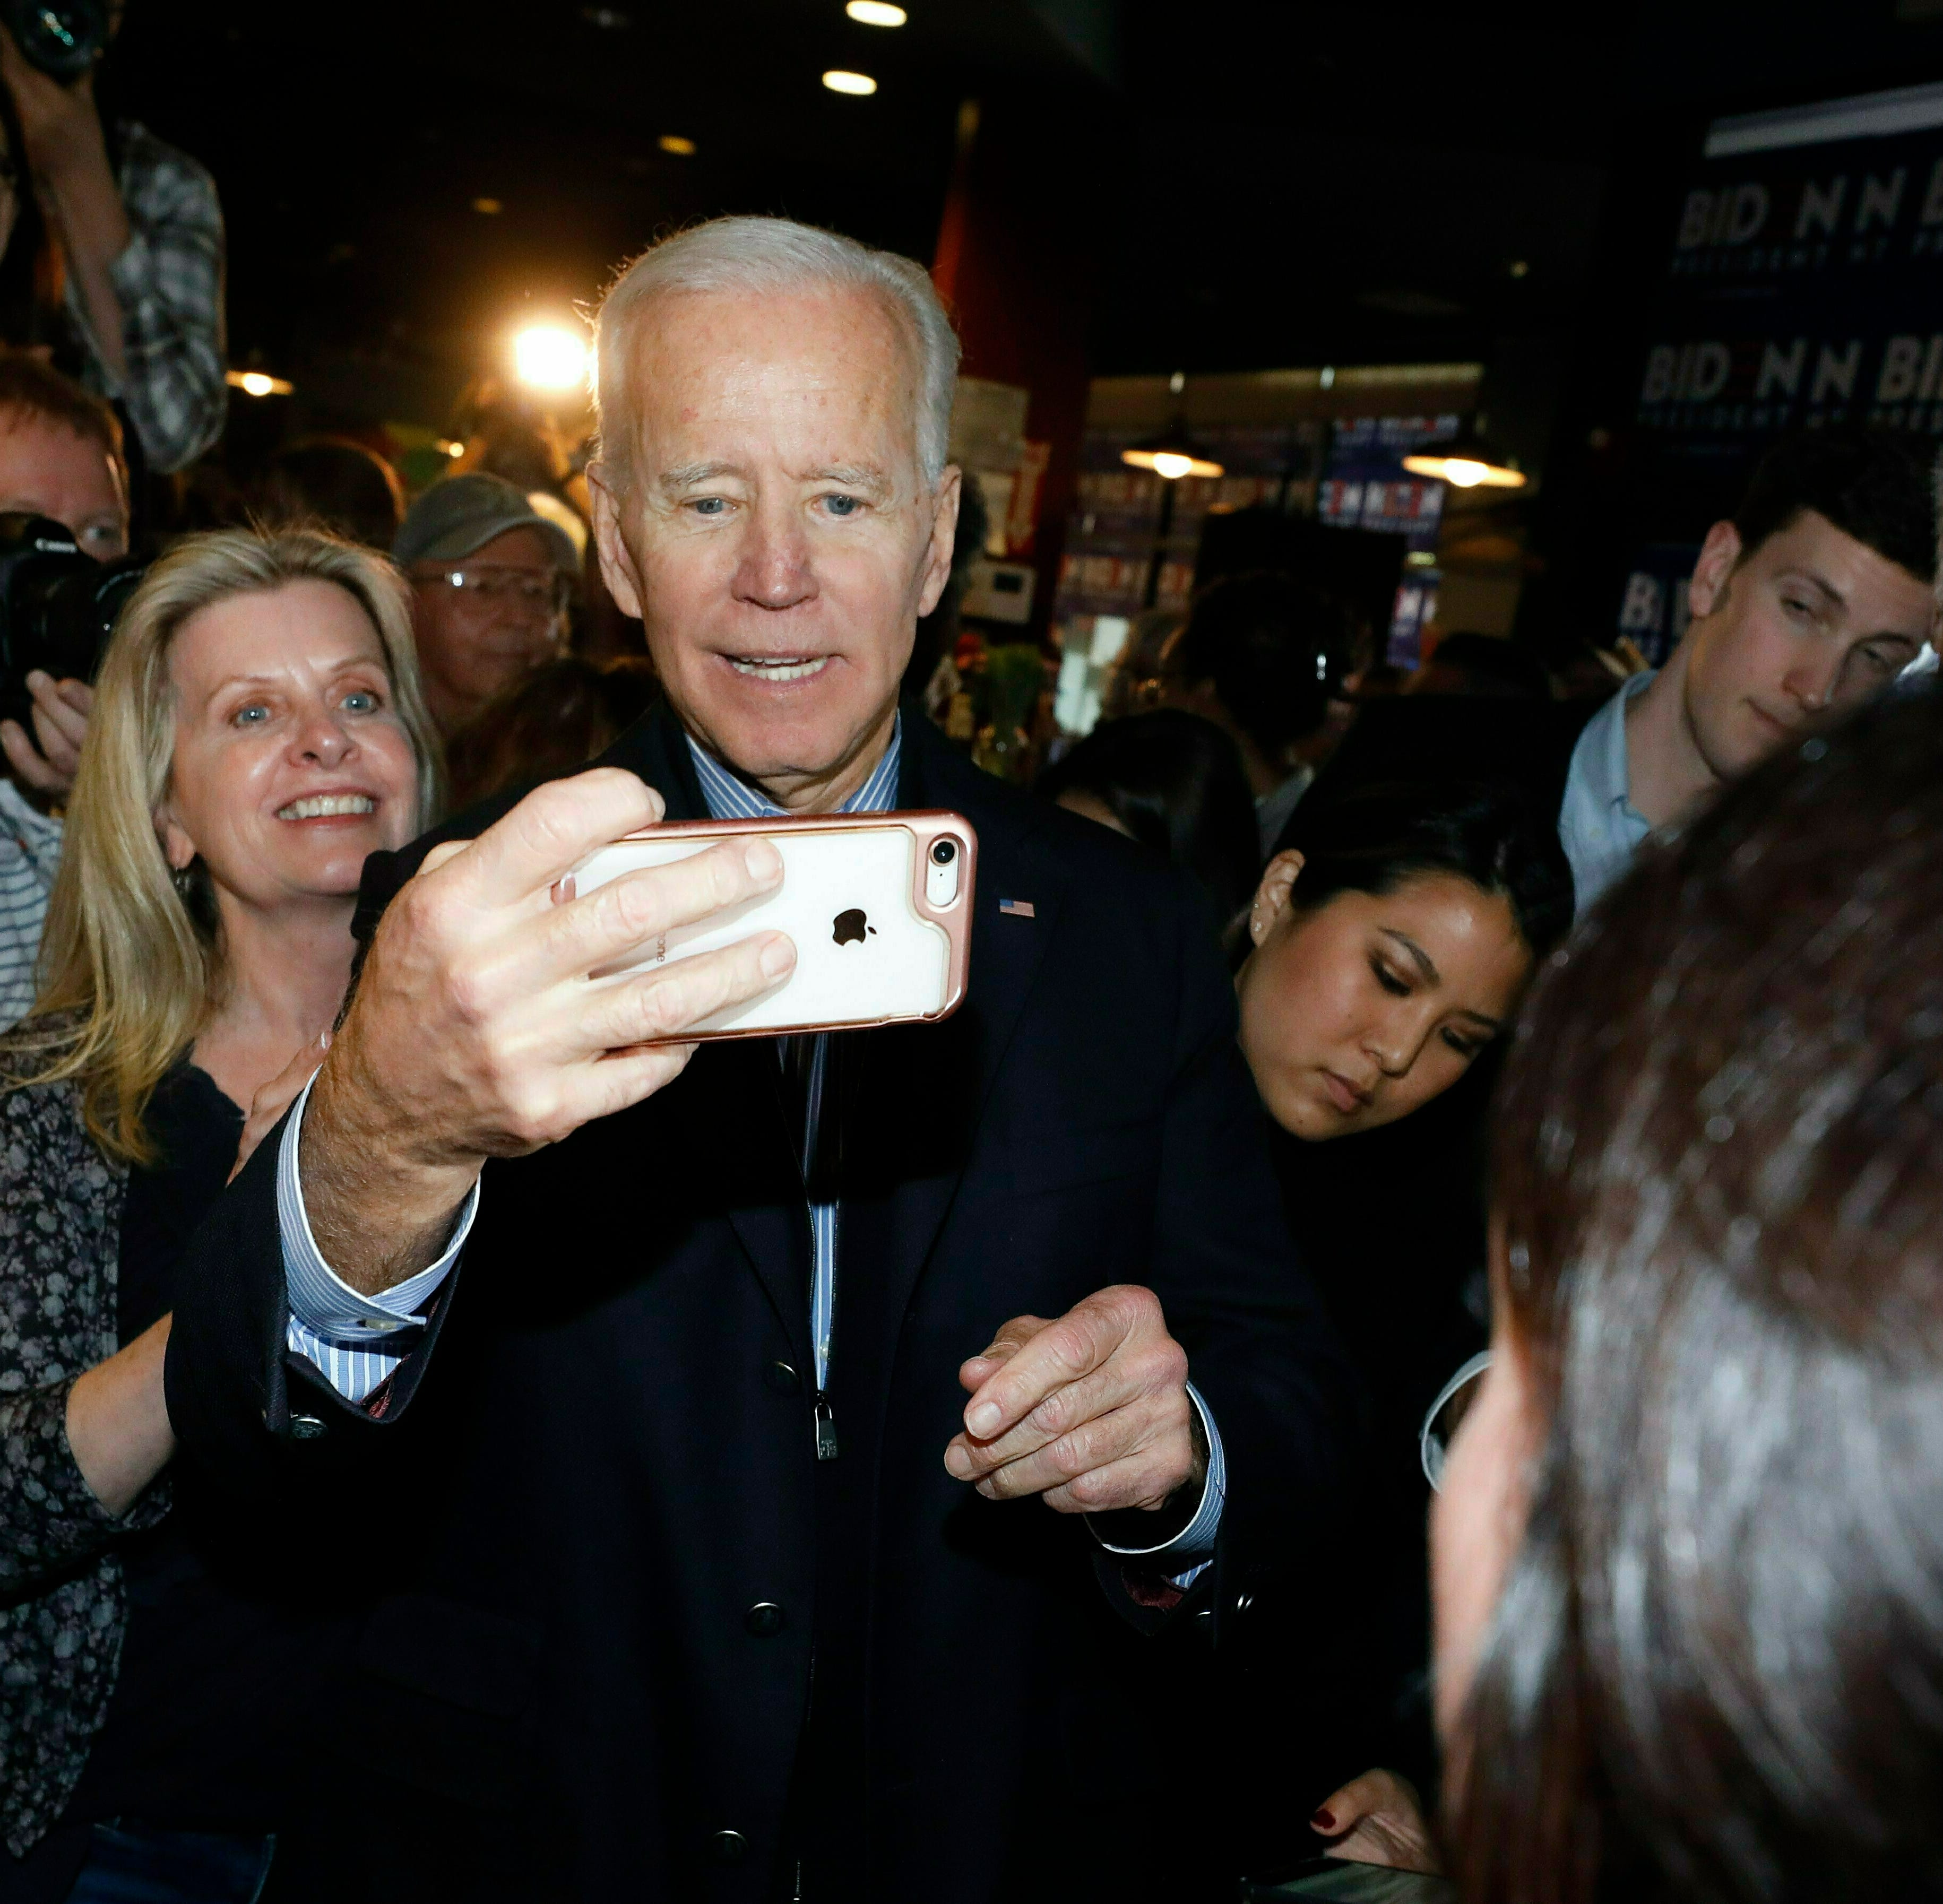 Biden rejecting Democrats' anger in call for national unity